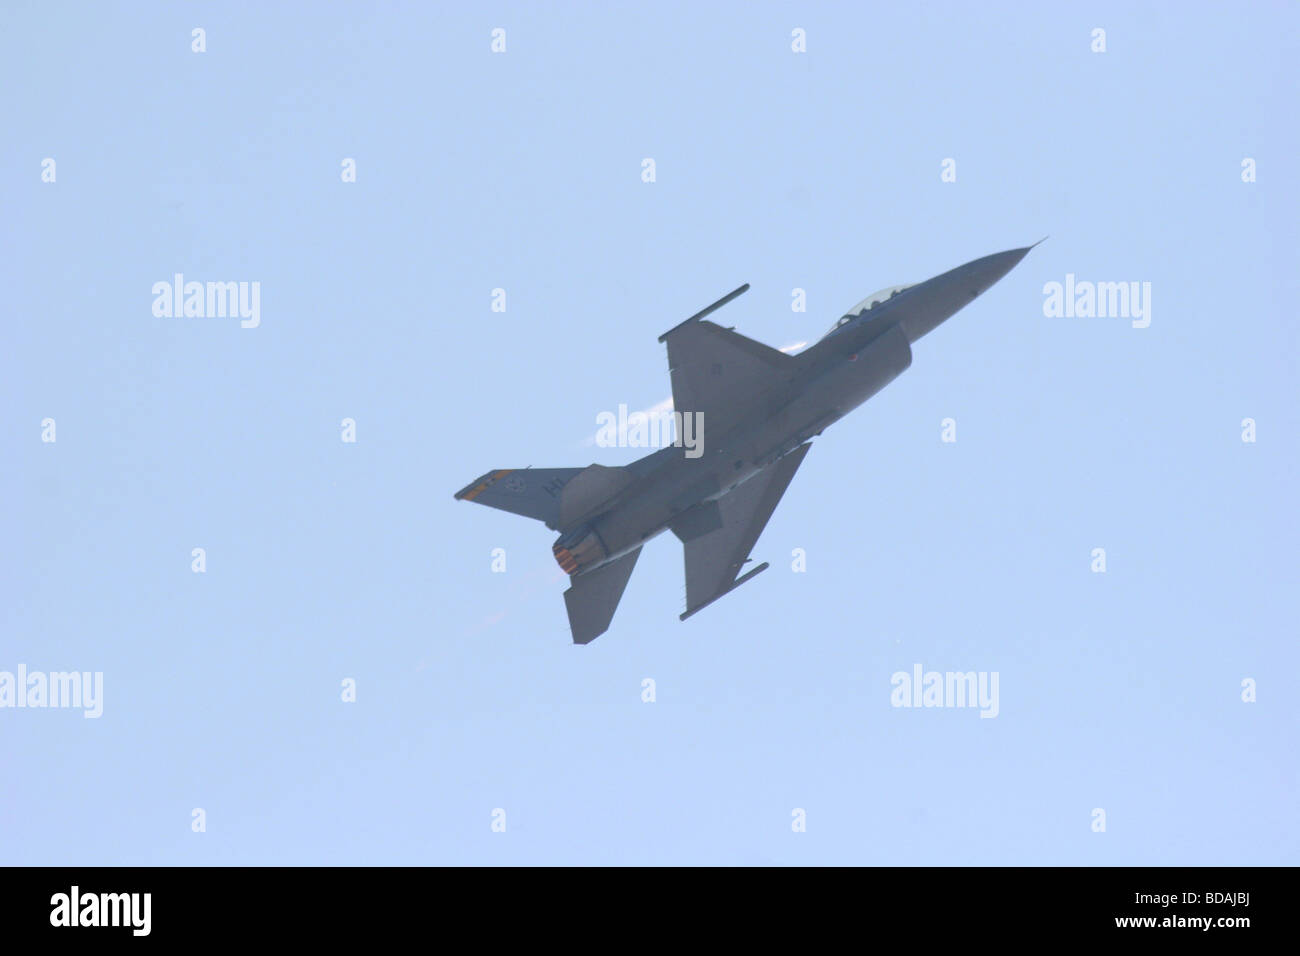 F-16 Fighting Falcon making a climb with afterburner on at Abbotsford International Air Show 2006 Stock Photo